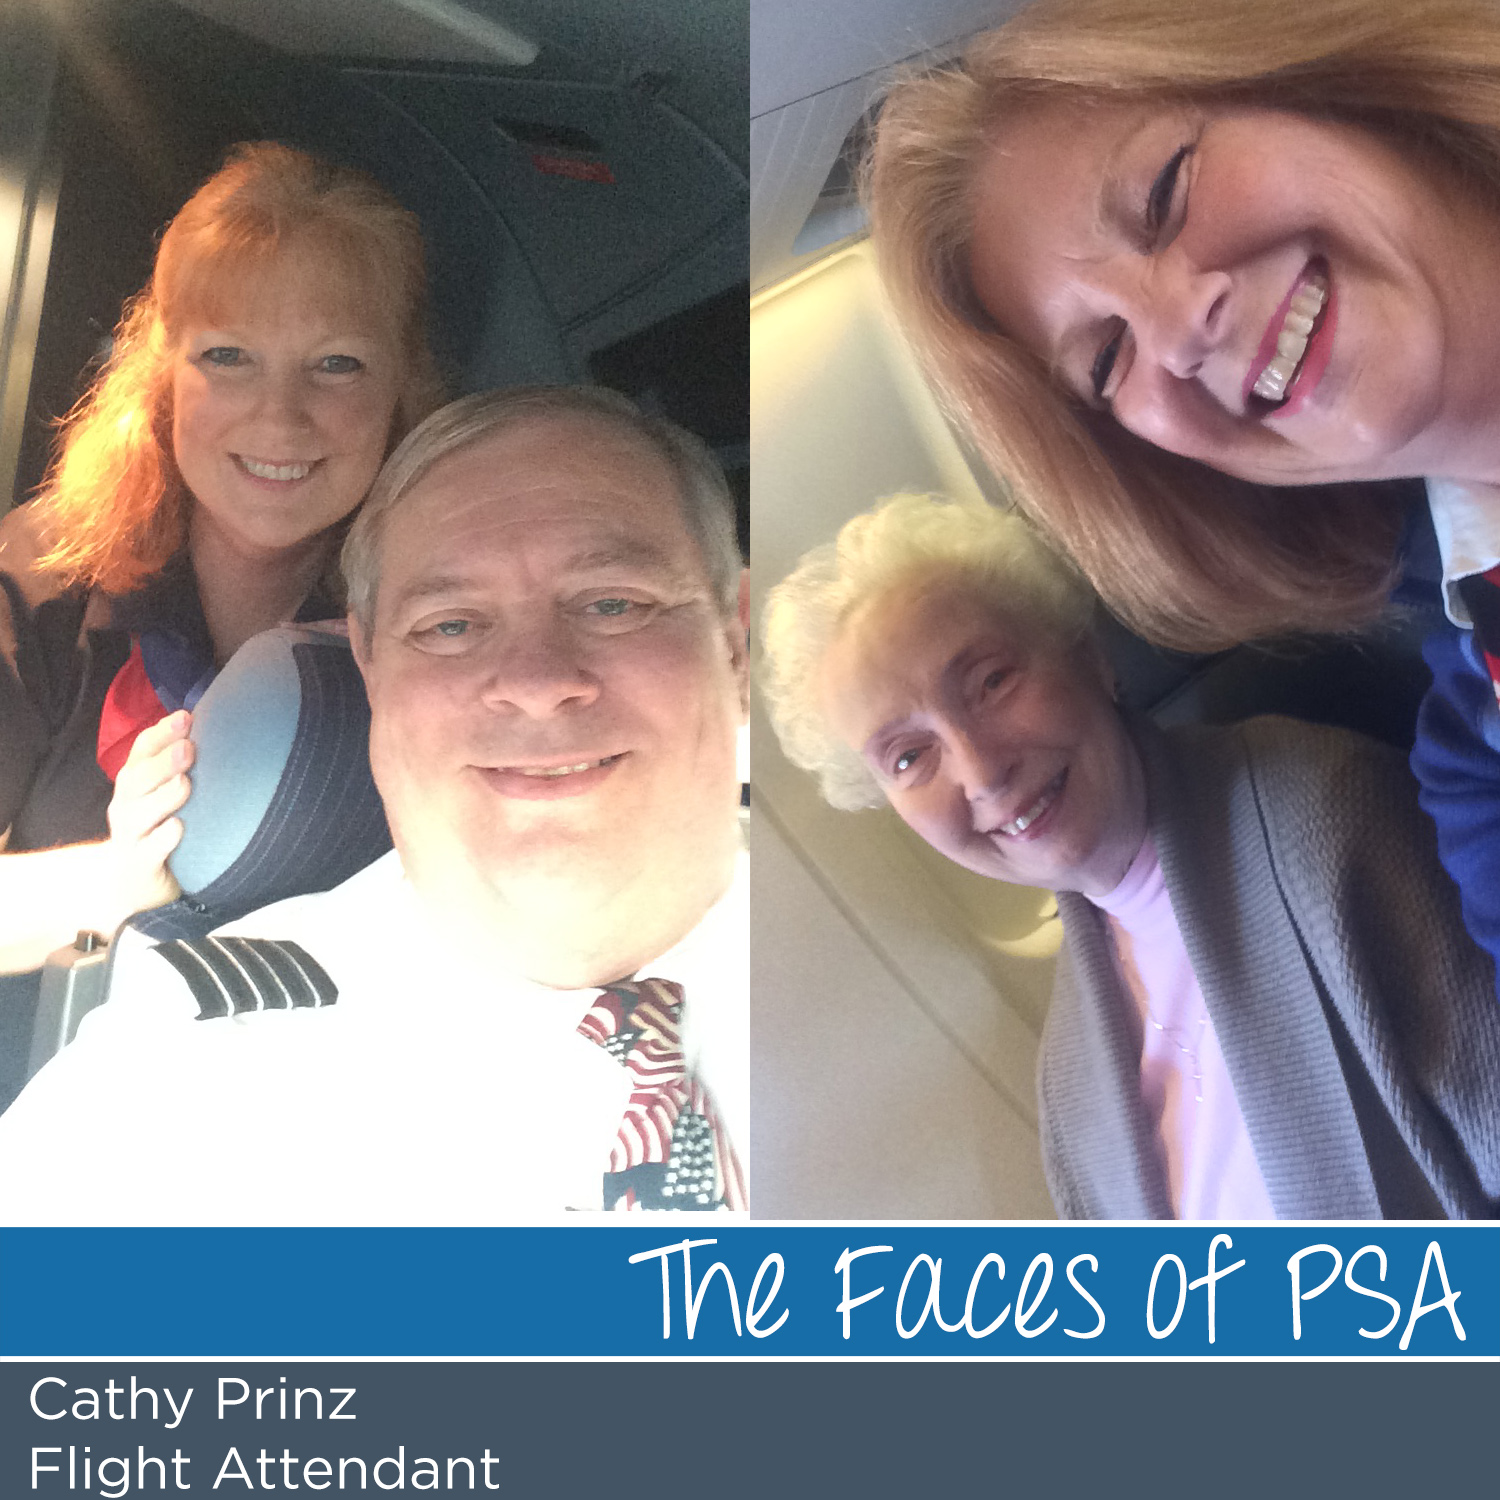 Faces of PSA: Meet Cathy Prinz